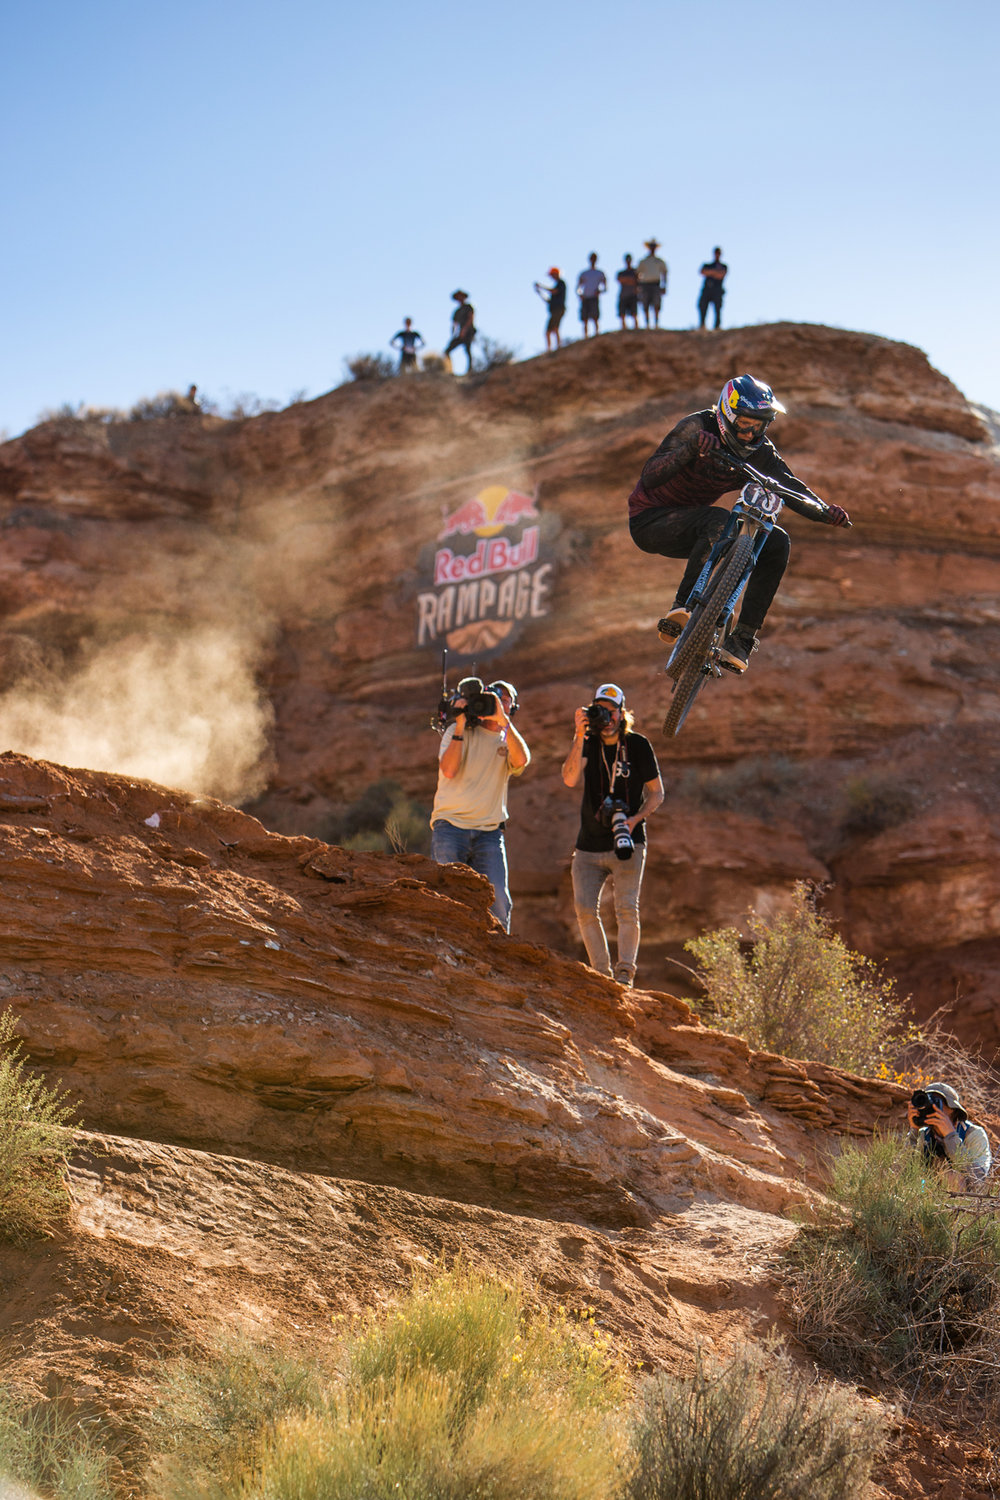 red-bull-rampage-18-brandon-semenuk-air.jpg